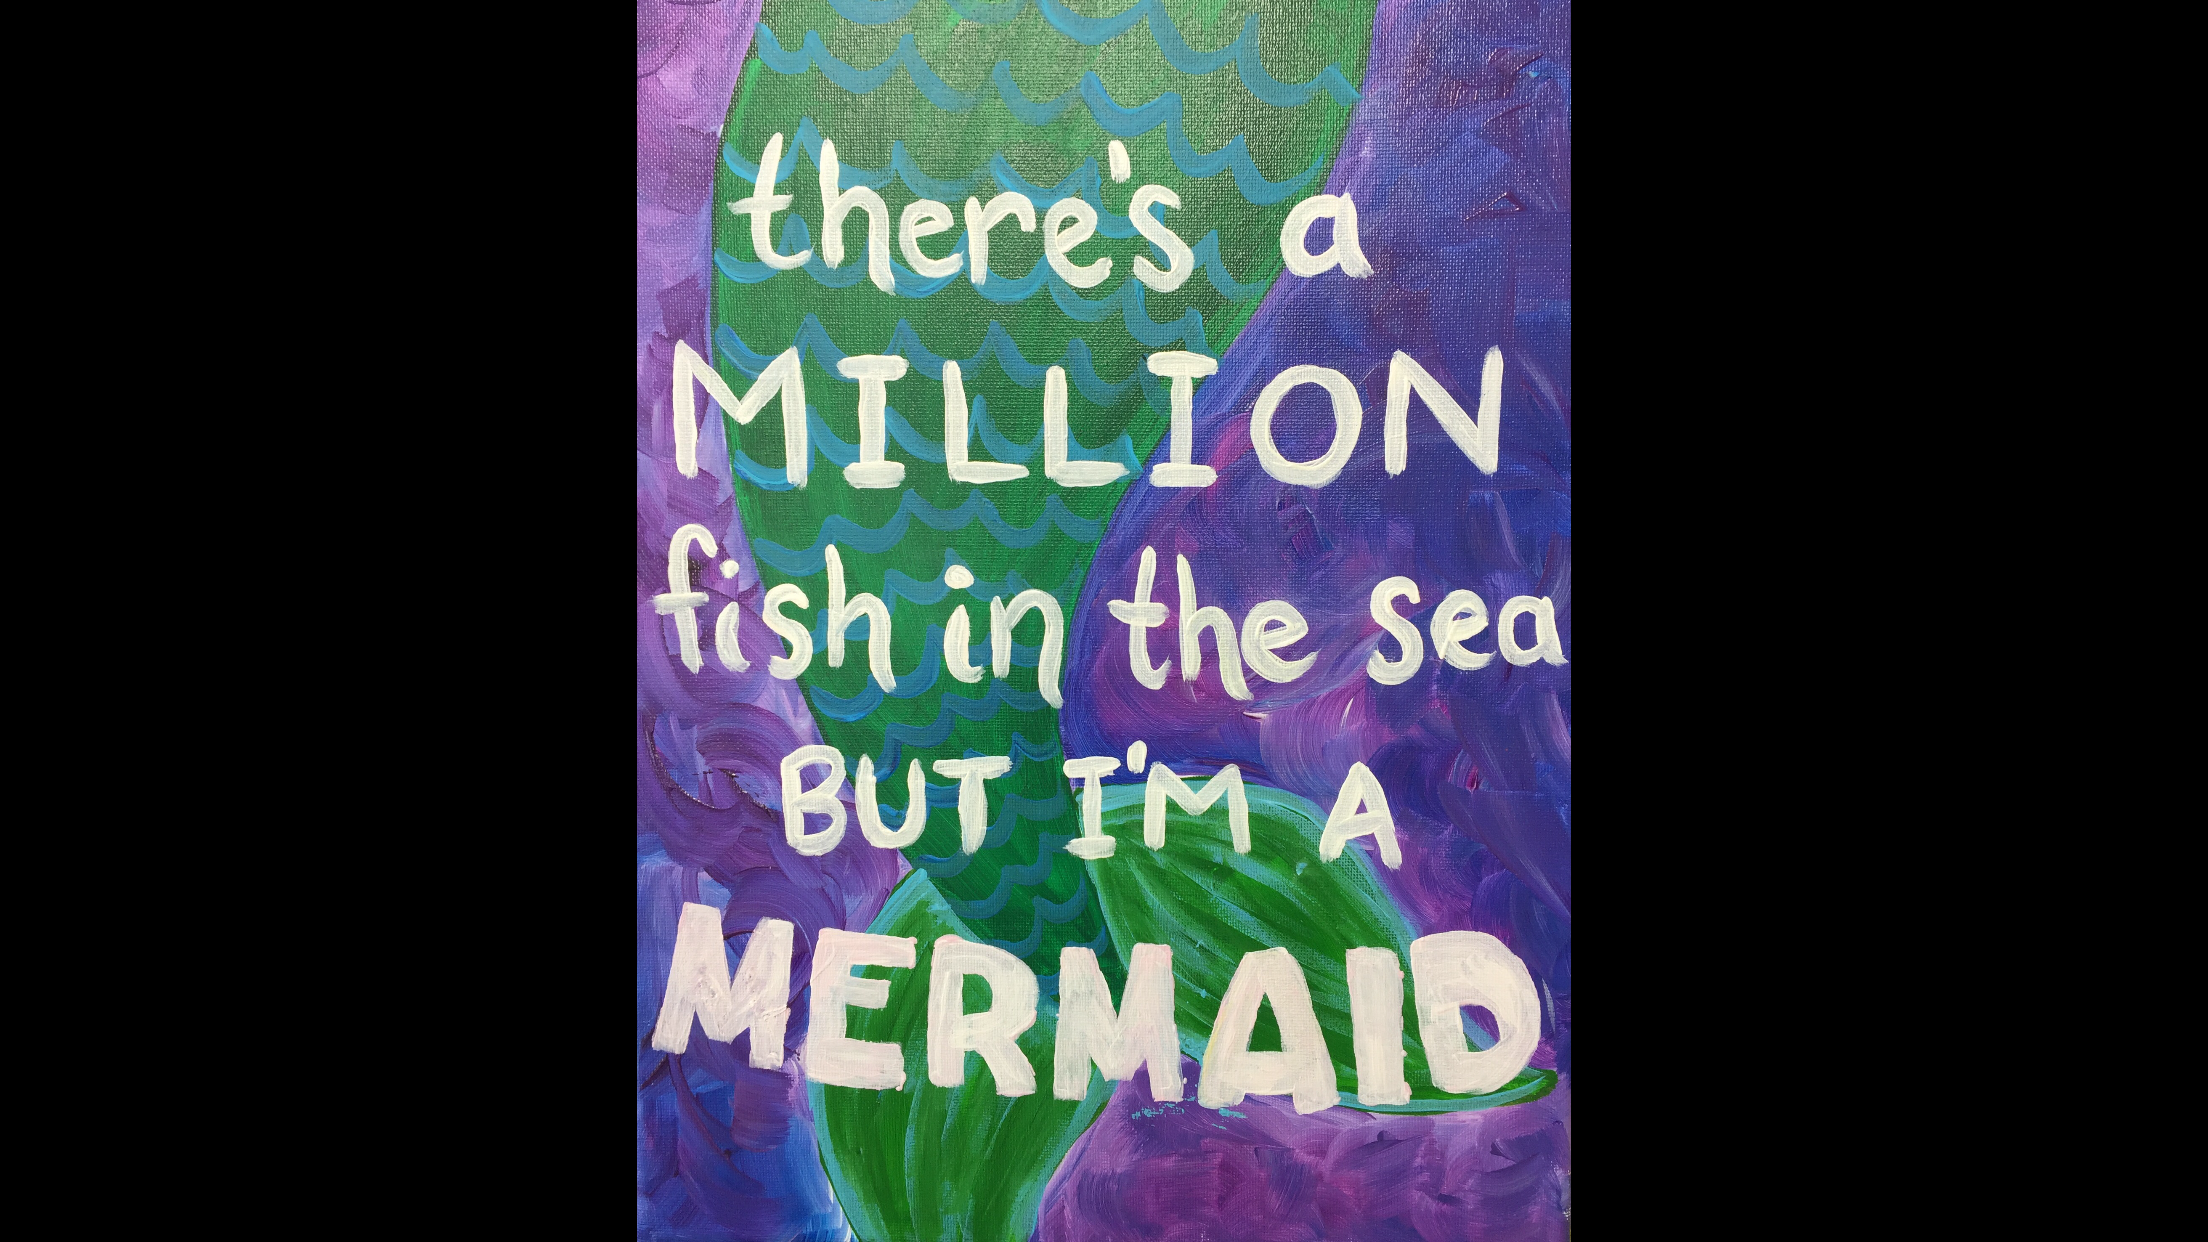 But I'm a Mermaid